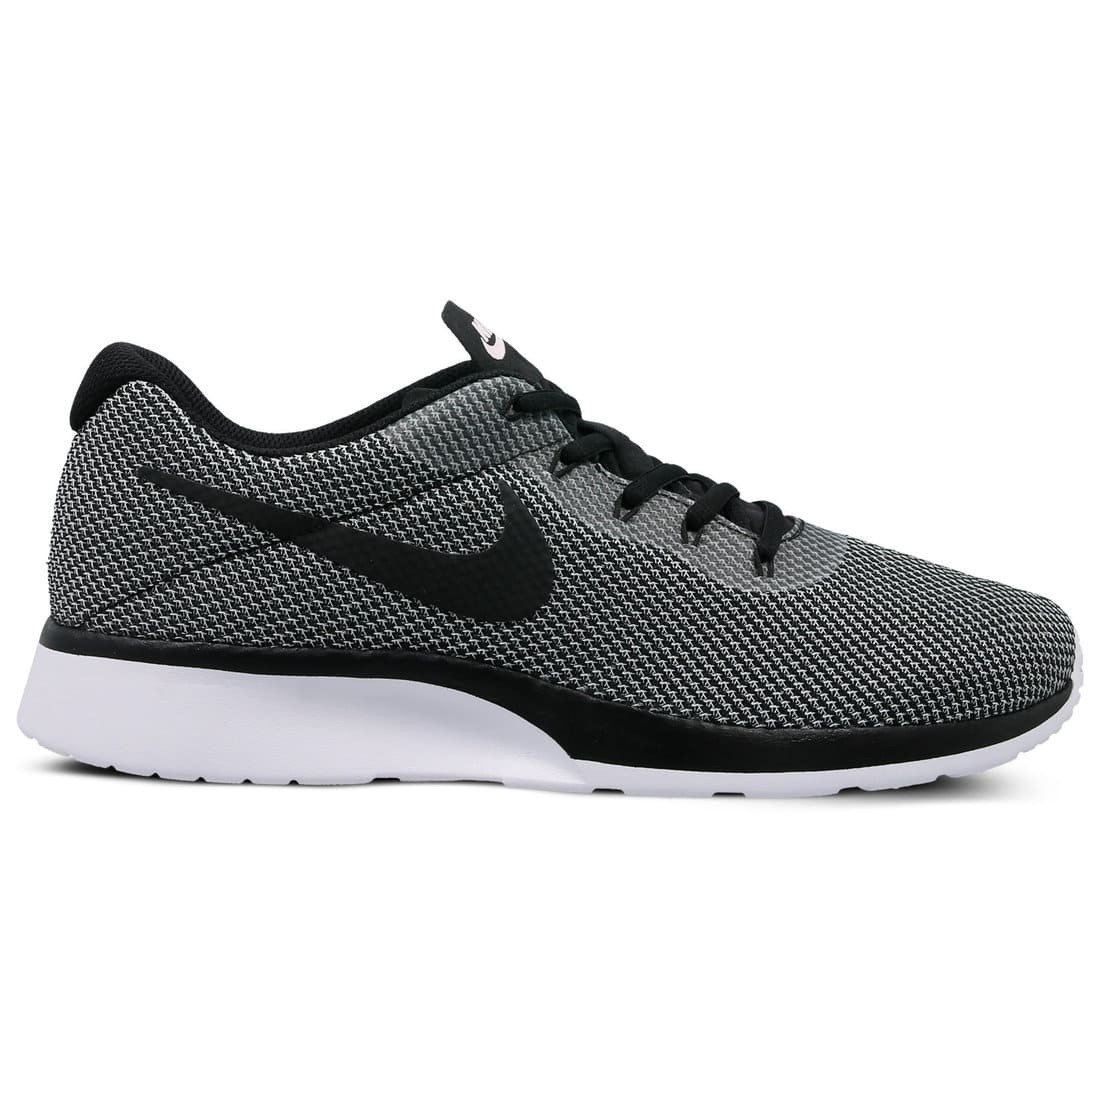 sports shoes 4f7a0 b1643 zapatilla nike tanjun racer running negro gris 921669 101. Cargando zoom.